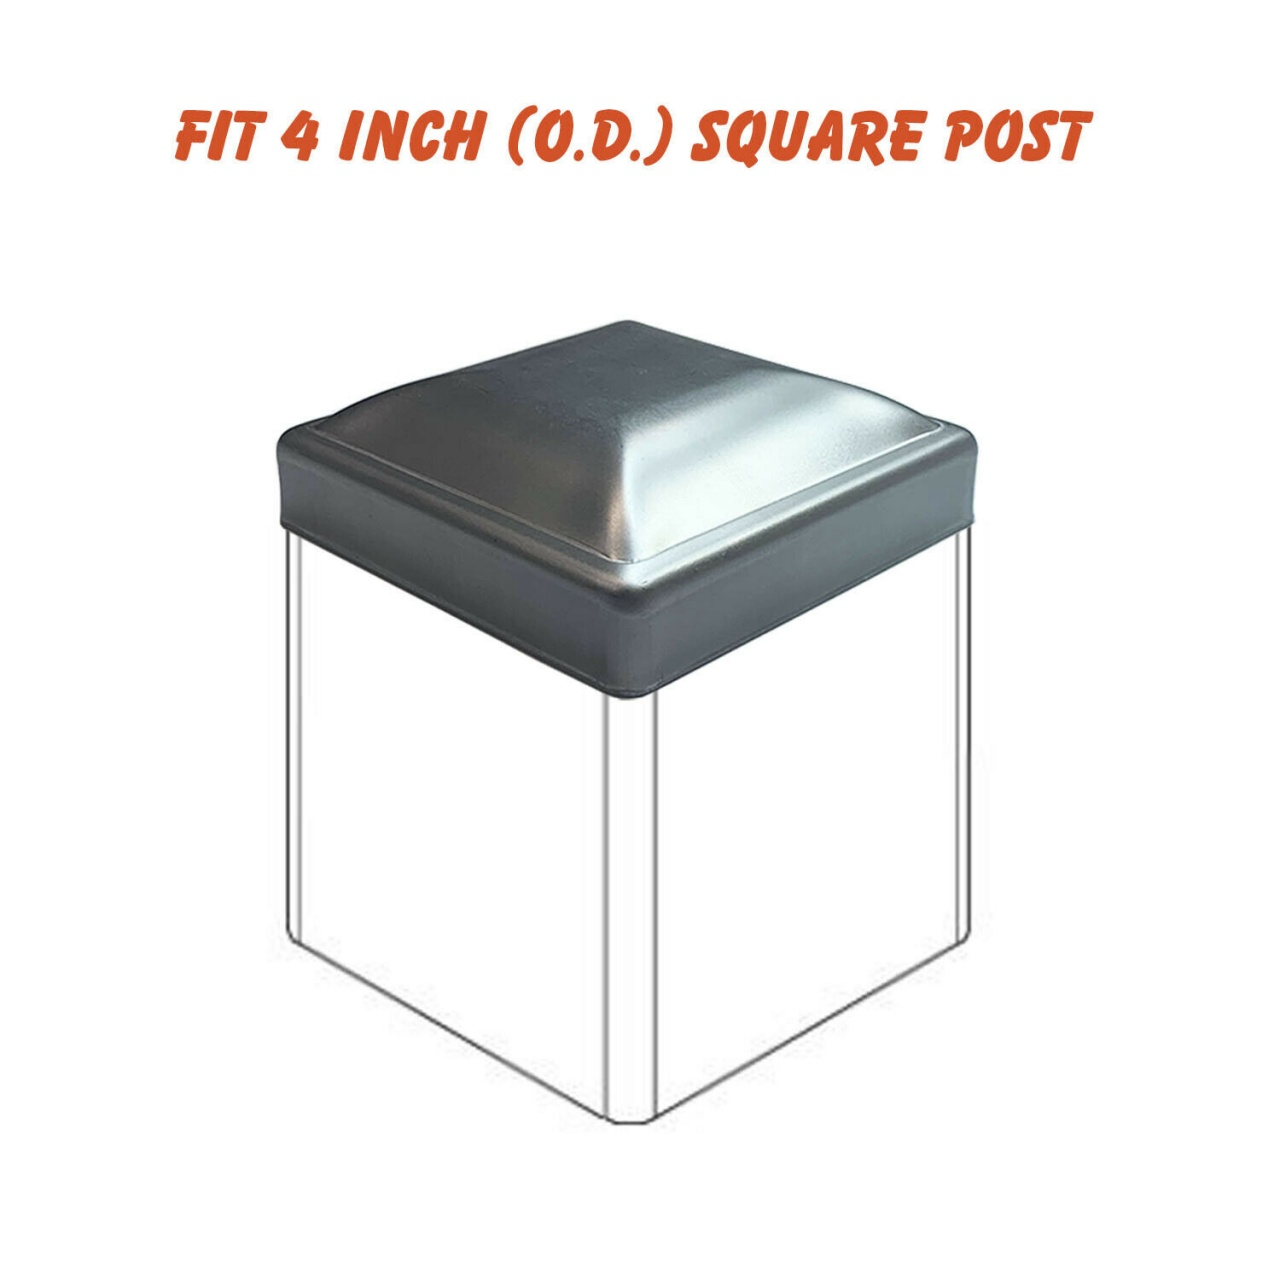 Solar Lights For Vinyl Fence Posts Details About Oasis 4 Square Steel Post Caps Fence Post Caps Deck Post Caps 4x4 O D Equalmarriagefl Vinyl From Solar Lights For Vinyl Fence